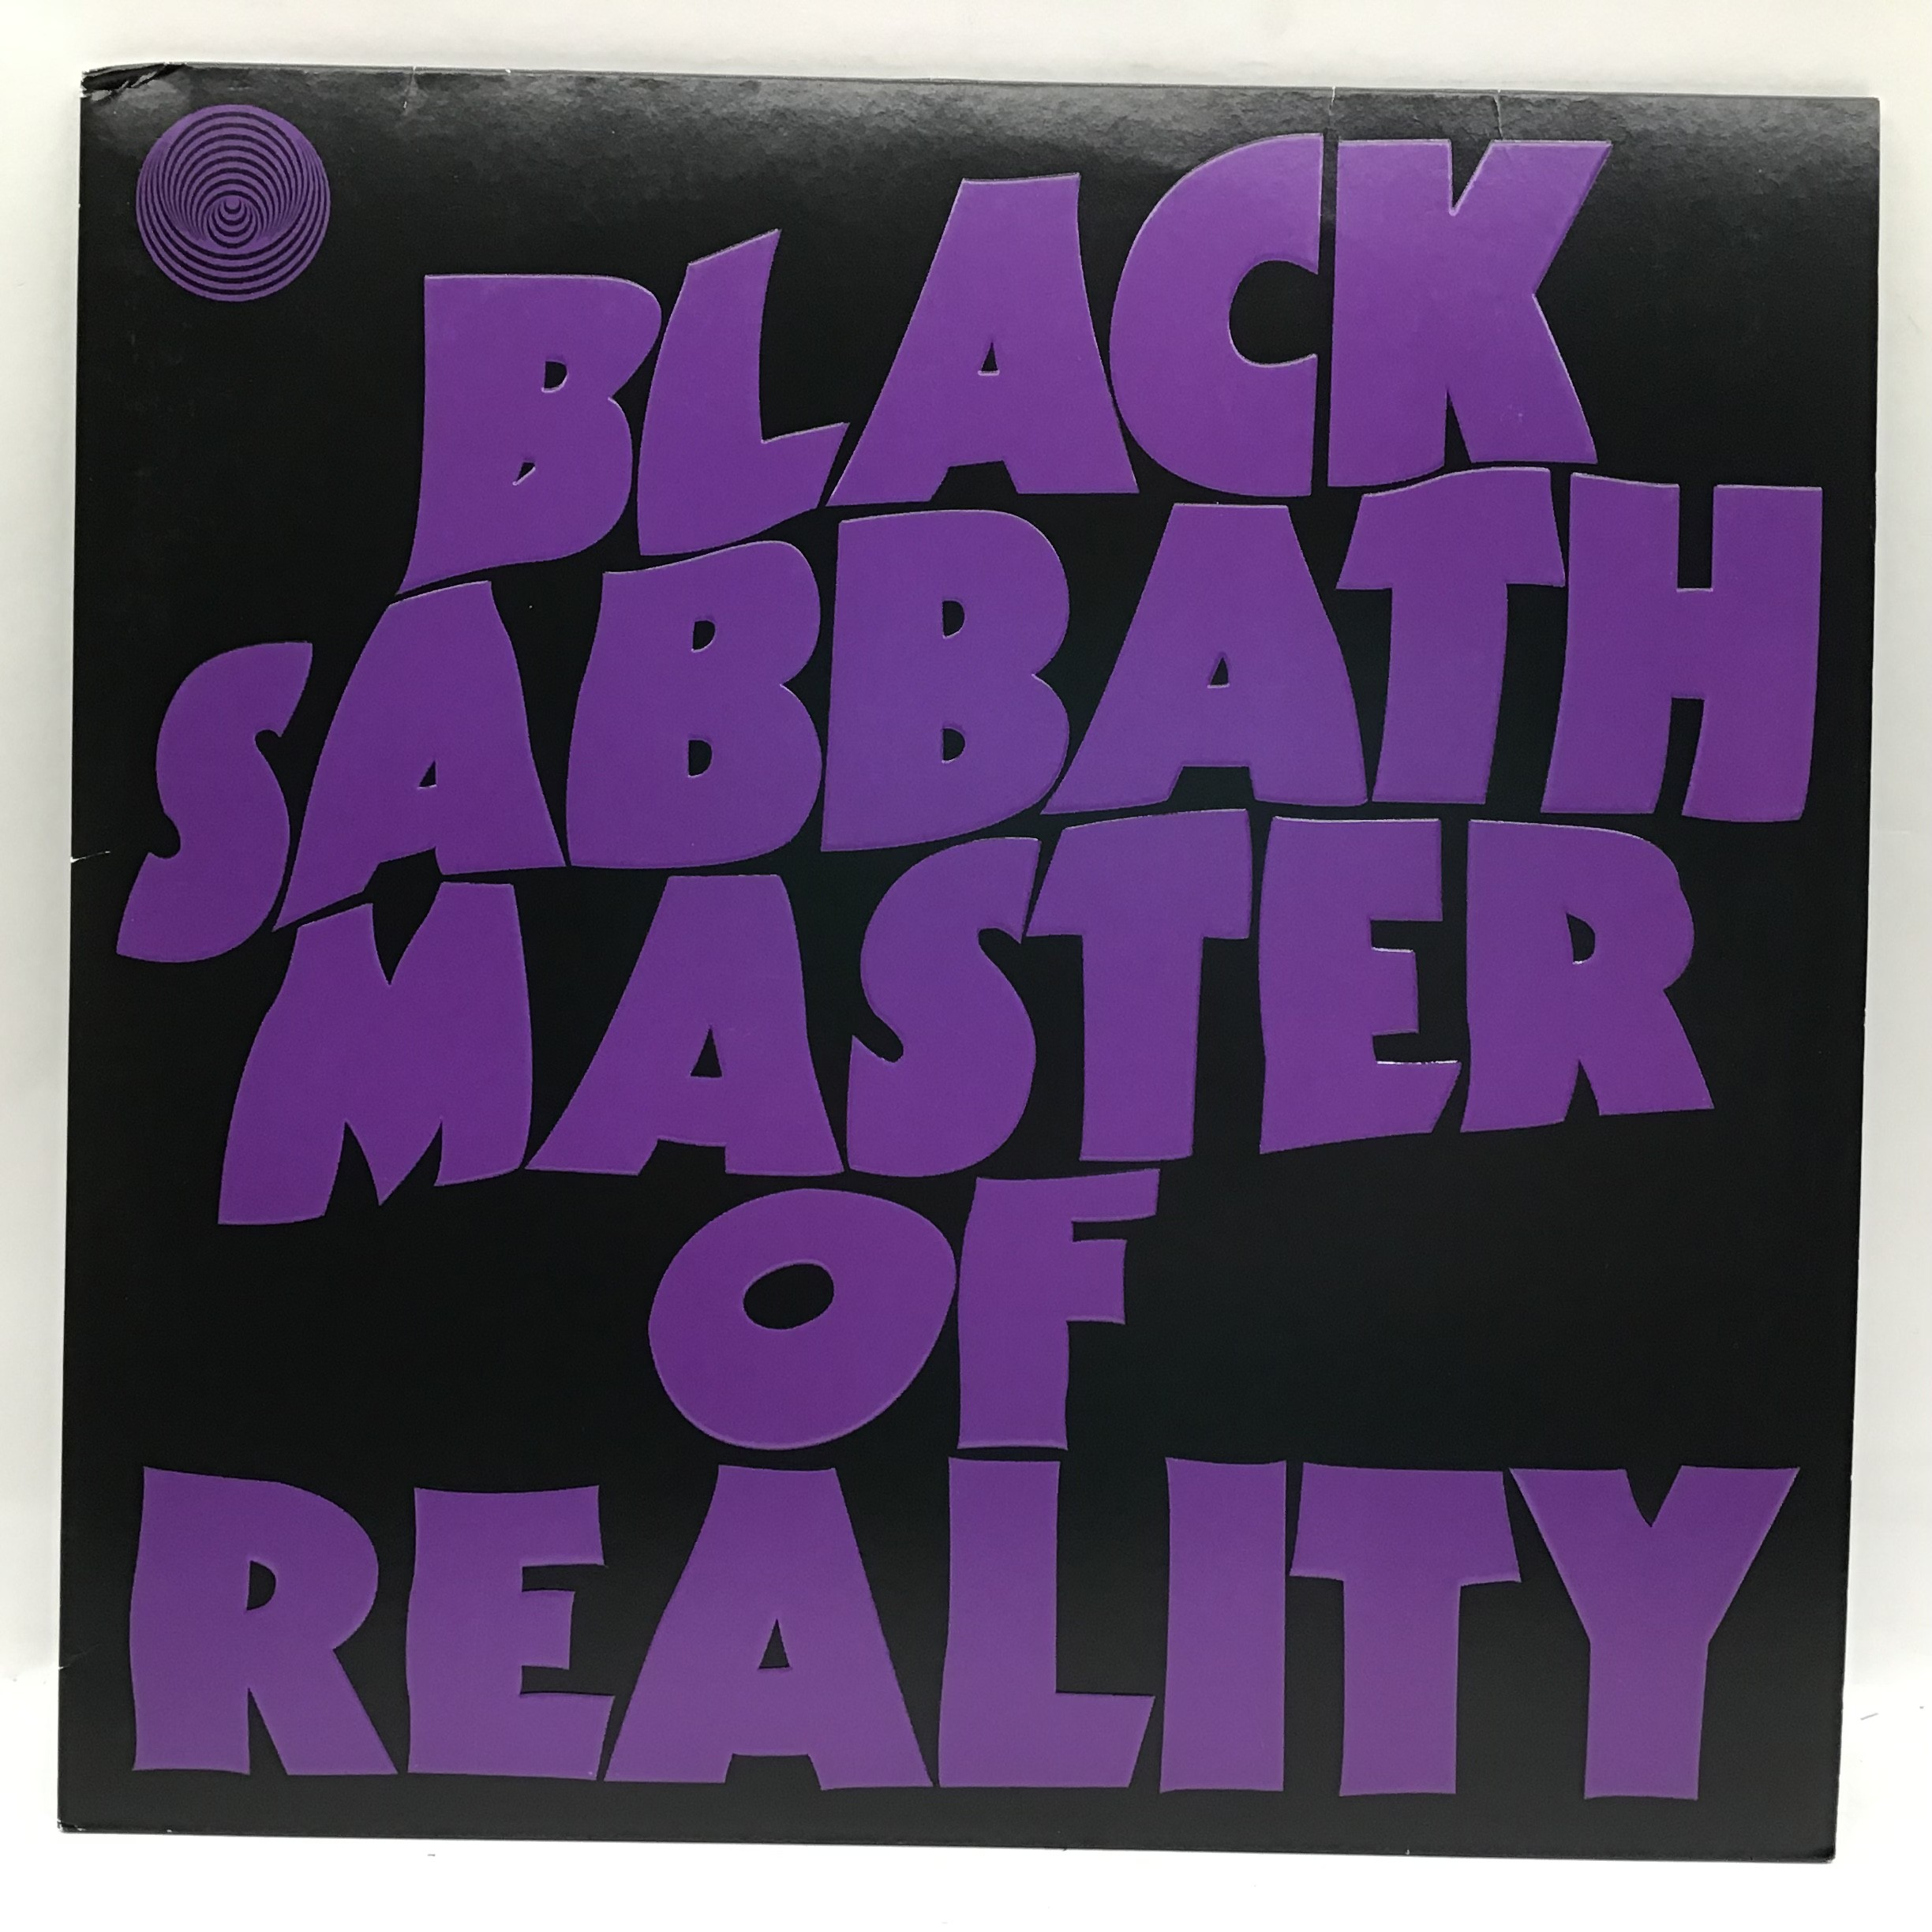 Black Sabbath ?Master of Reality? HMV exclusive and limited to 500 copies. Released on purple